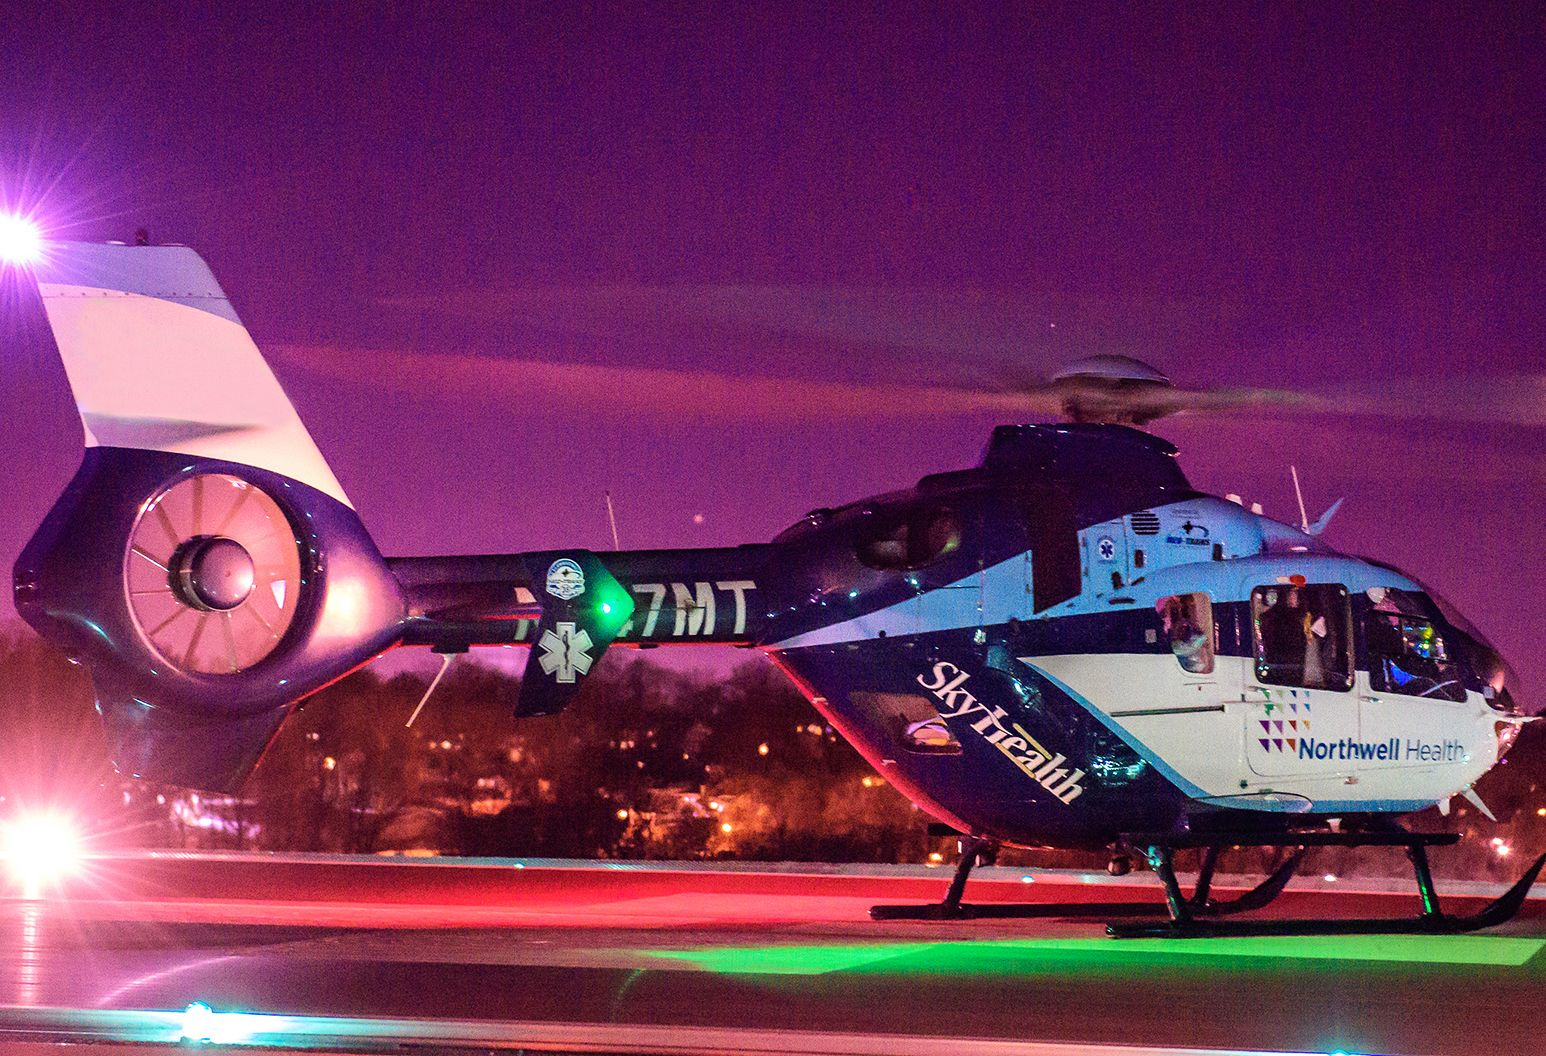 A helicopter sits on a helipad. It is blue and white and says Northwell Health and SkyHealth on the side. The propeller is spinning.